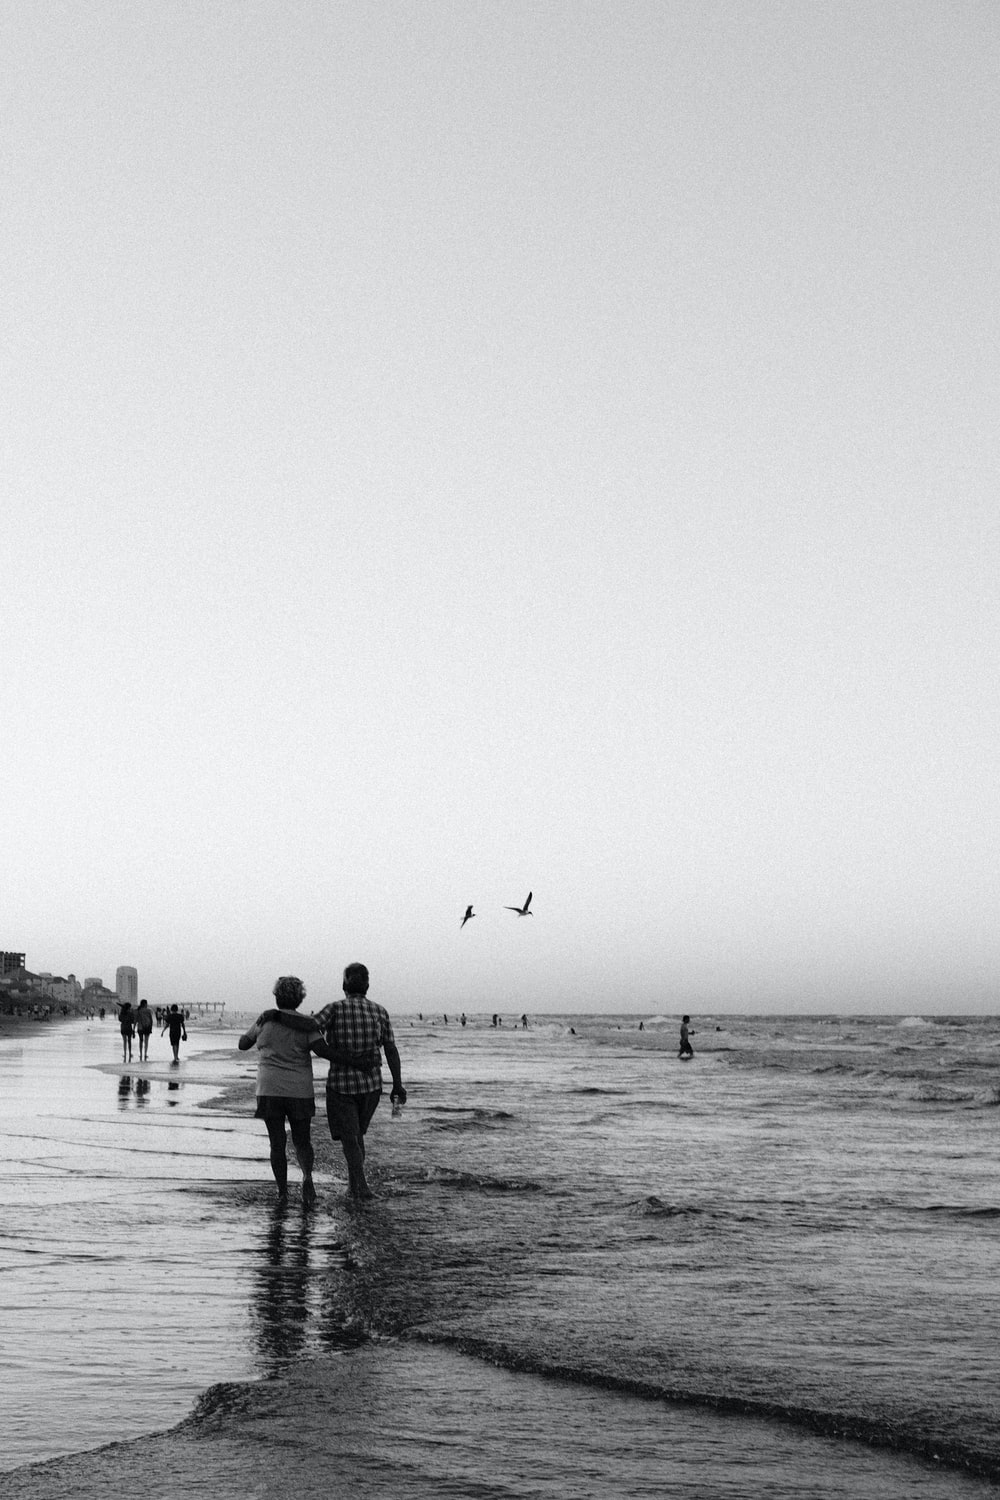 grayscale photo of people walking on beach